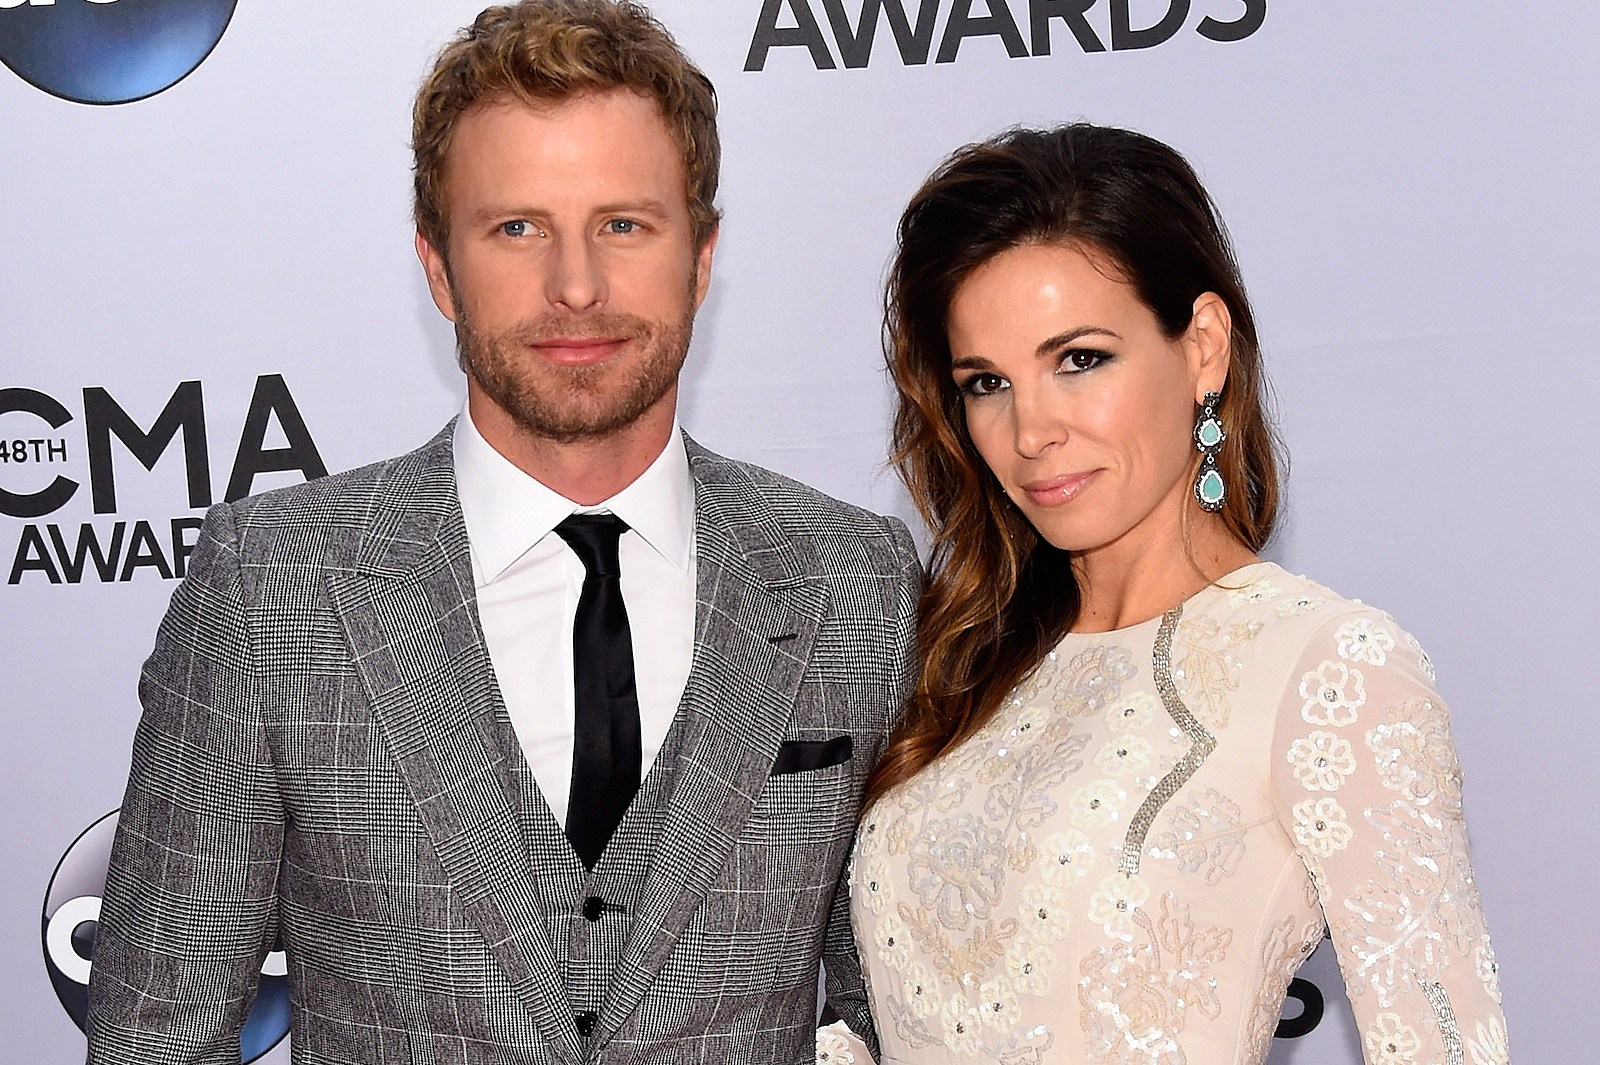 dierks bentley 'grateful' to share success with wife cassidy